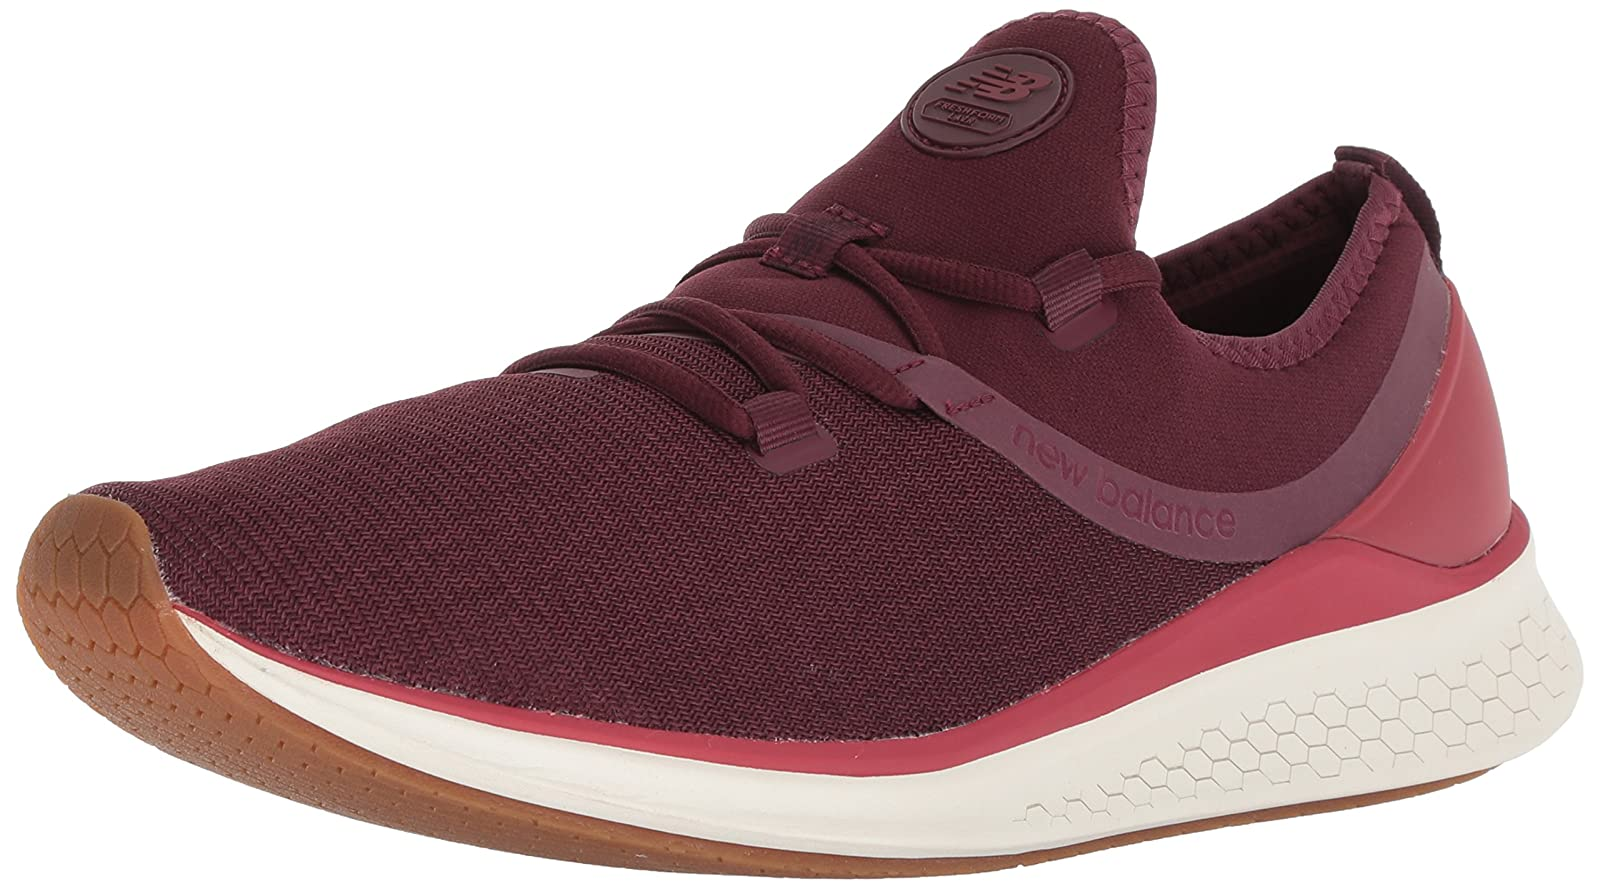 New Balance Men's Lazr V1 Fresh MLAZRER Burgundy